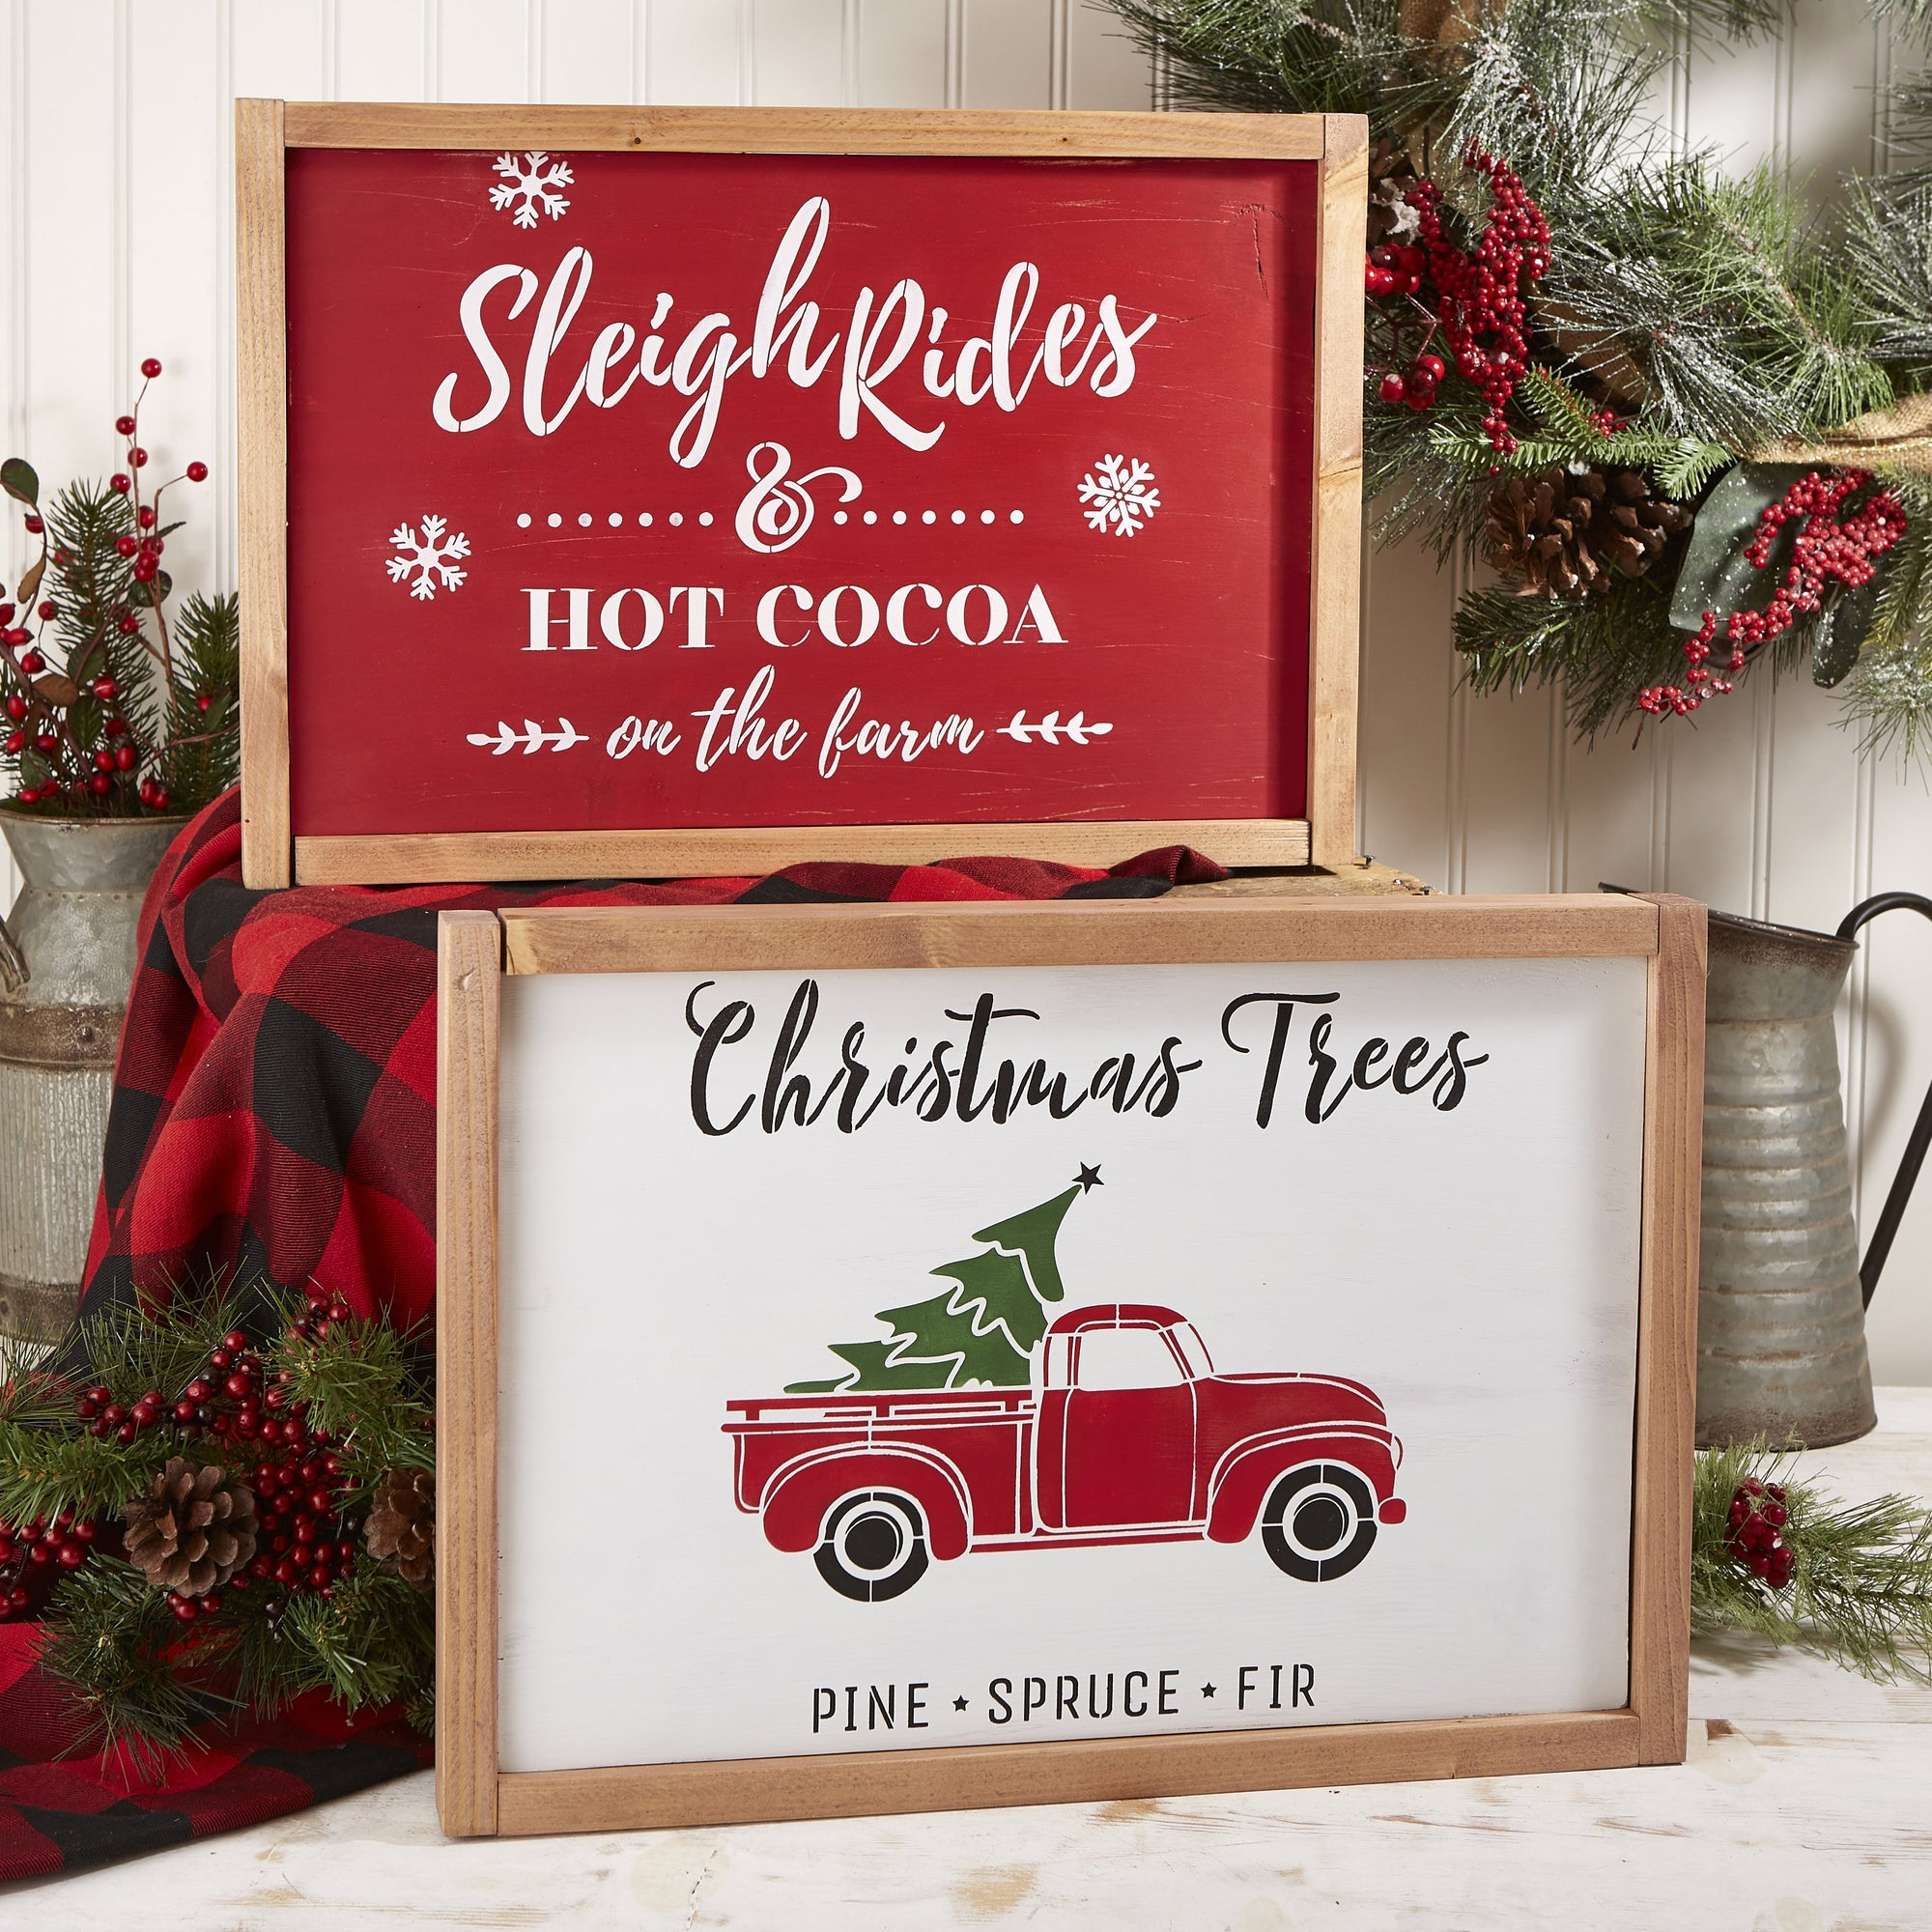 Reusable Christmas Trees Vintage Truck Stencil Set 2 Pack Essential Stencil